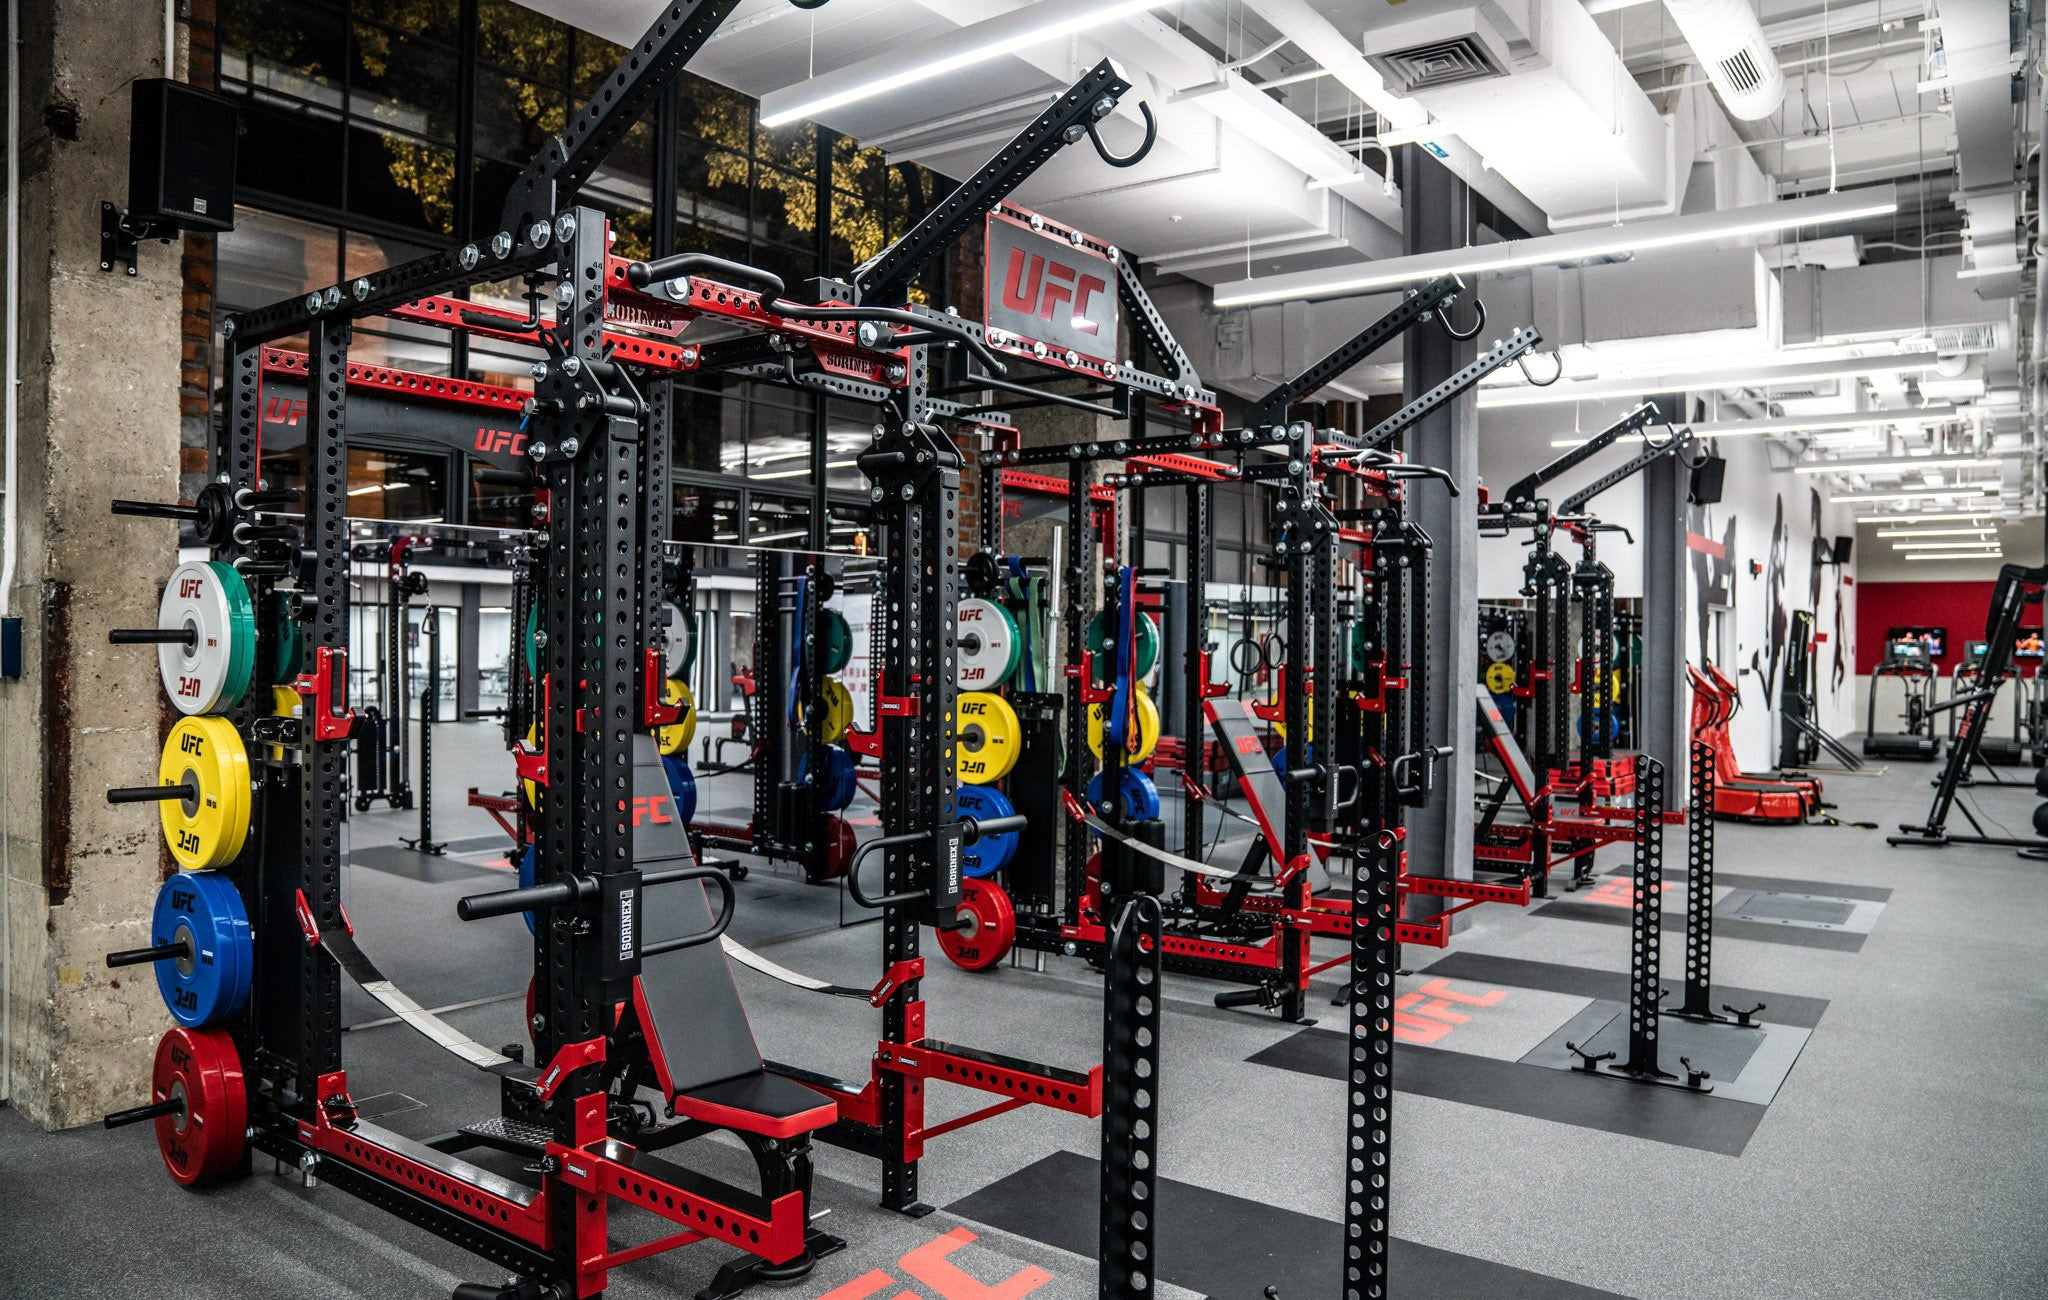 UFC Base Camp Power Rack